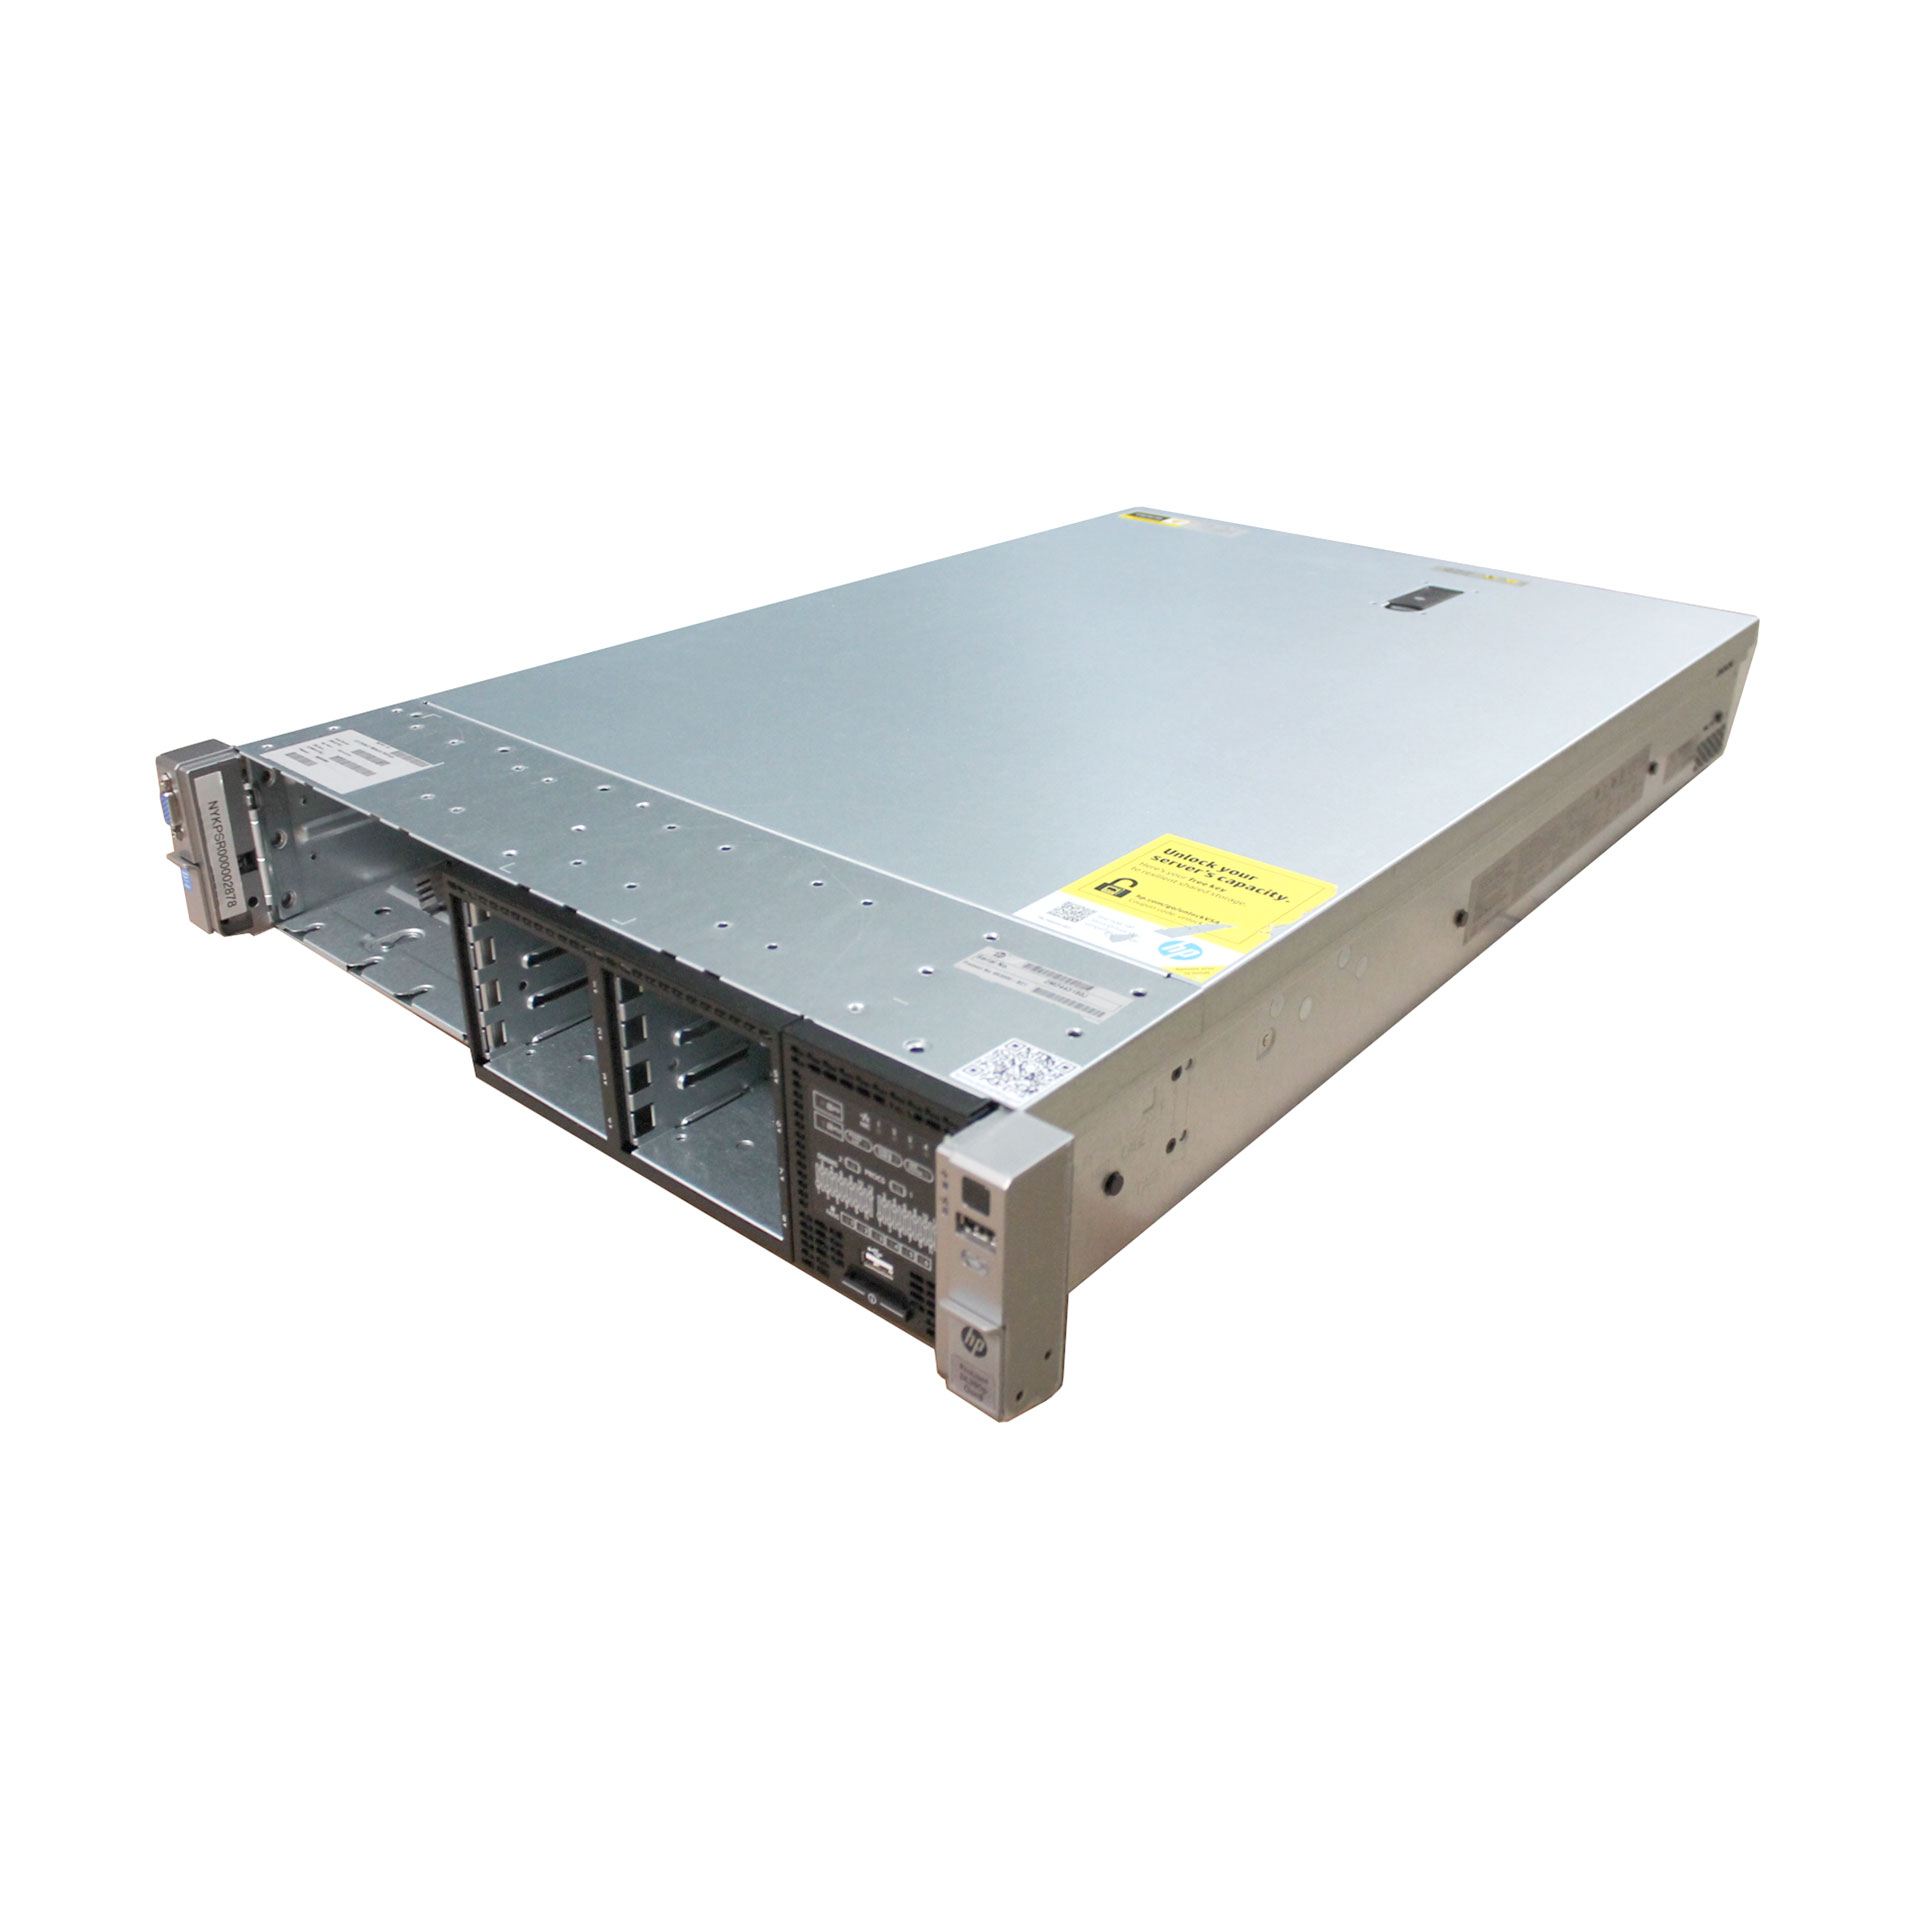 HP ProLiant DL380p Gen8 Server 2x E5-2670 2.6Ghz 32GB 670852-S01